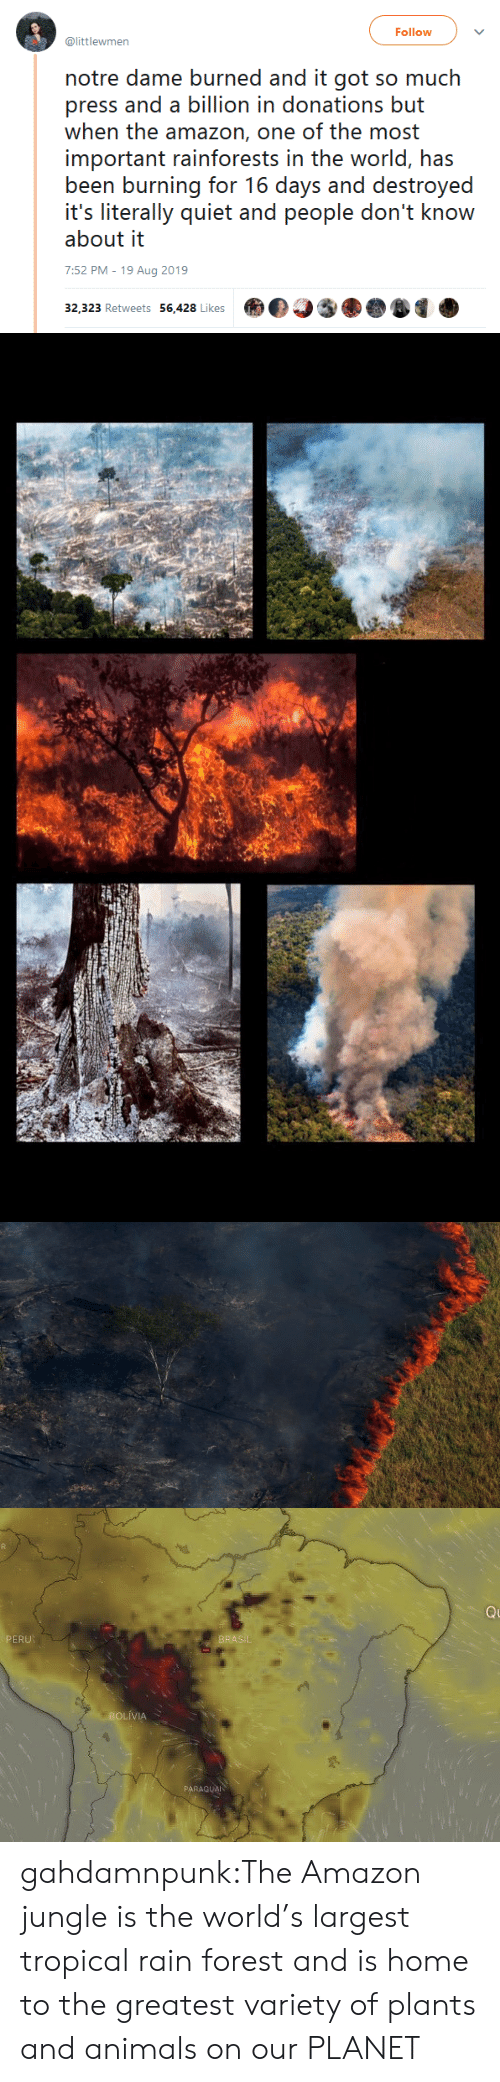 jungle: Follow  @littlewmen  notre dame burned and it got so much  press and a billion in donations but  when the amazon, one of the most  important rainforests in the world, has  been burning for 16 days and destroyed  it's literally quiet and people don't know  about it  7:52 PM - 19 Aug 2019  32,323 Retweets 56,428 Likes   Q  PERU  BRASIL  BOLIVIA  PARAGUAN gahdamnpunk:The Amazon jungle is the world's largest tropical rain forest and is home to the greatest variety of plants and animals on our PLANET